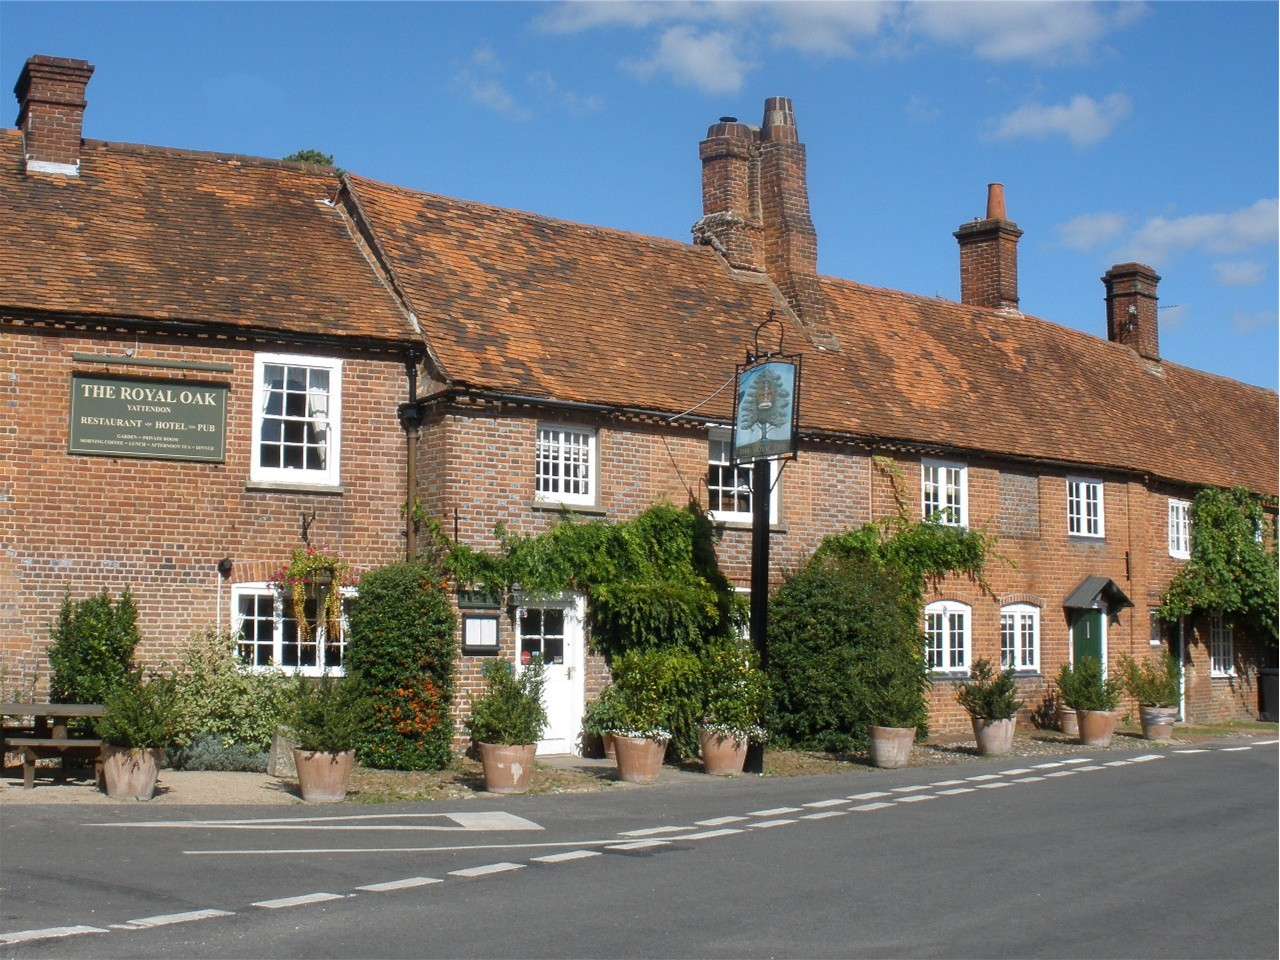 The Royal Oak Yattenden